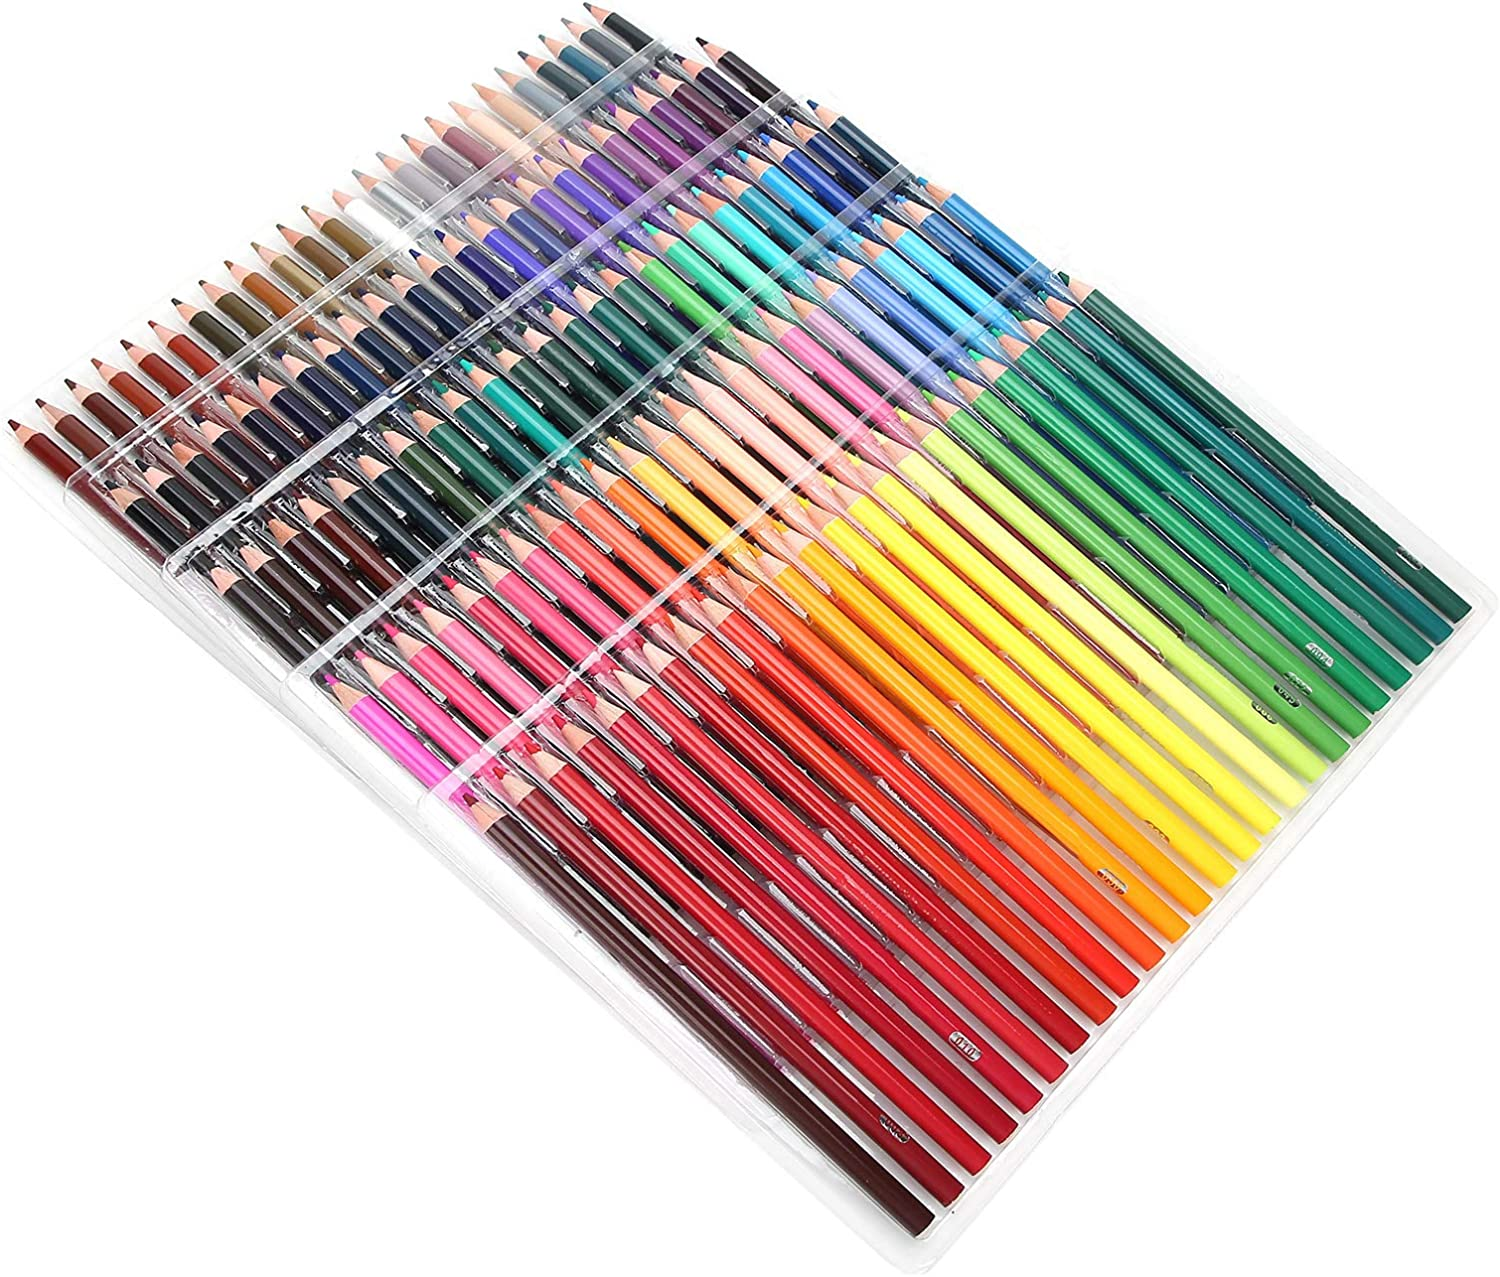 Drawing Colored Pencils Shipping included Soft Core Appli Artistic Bargain sale for